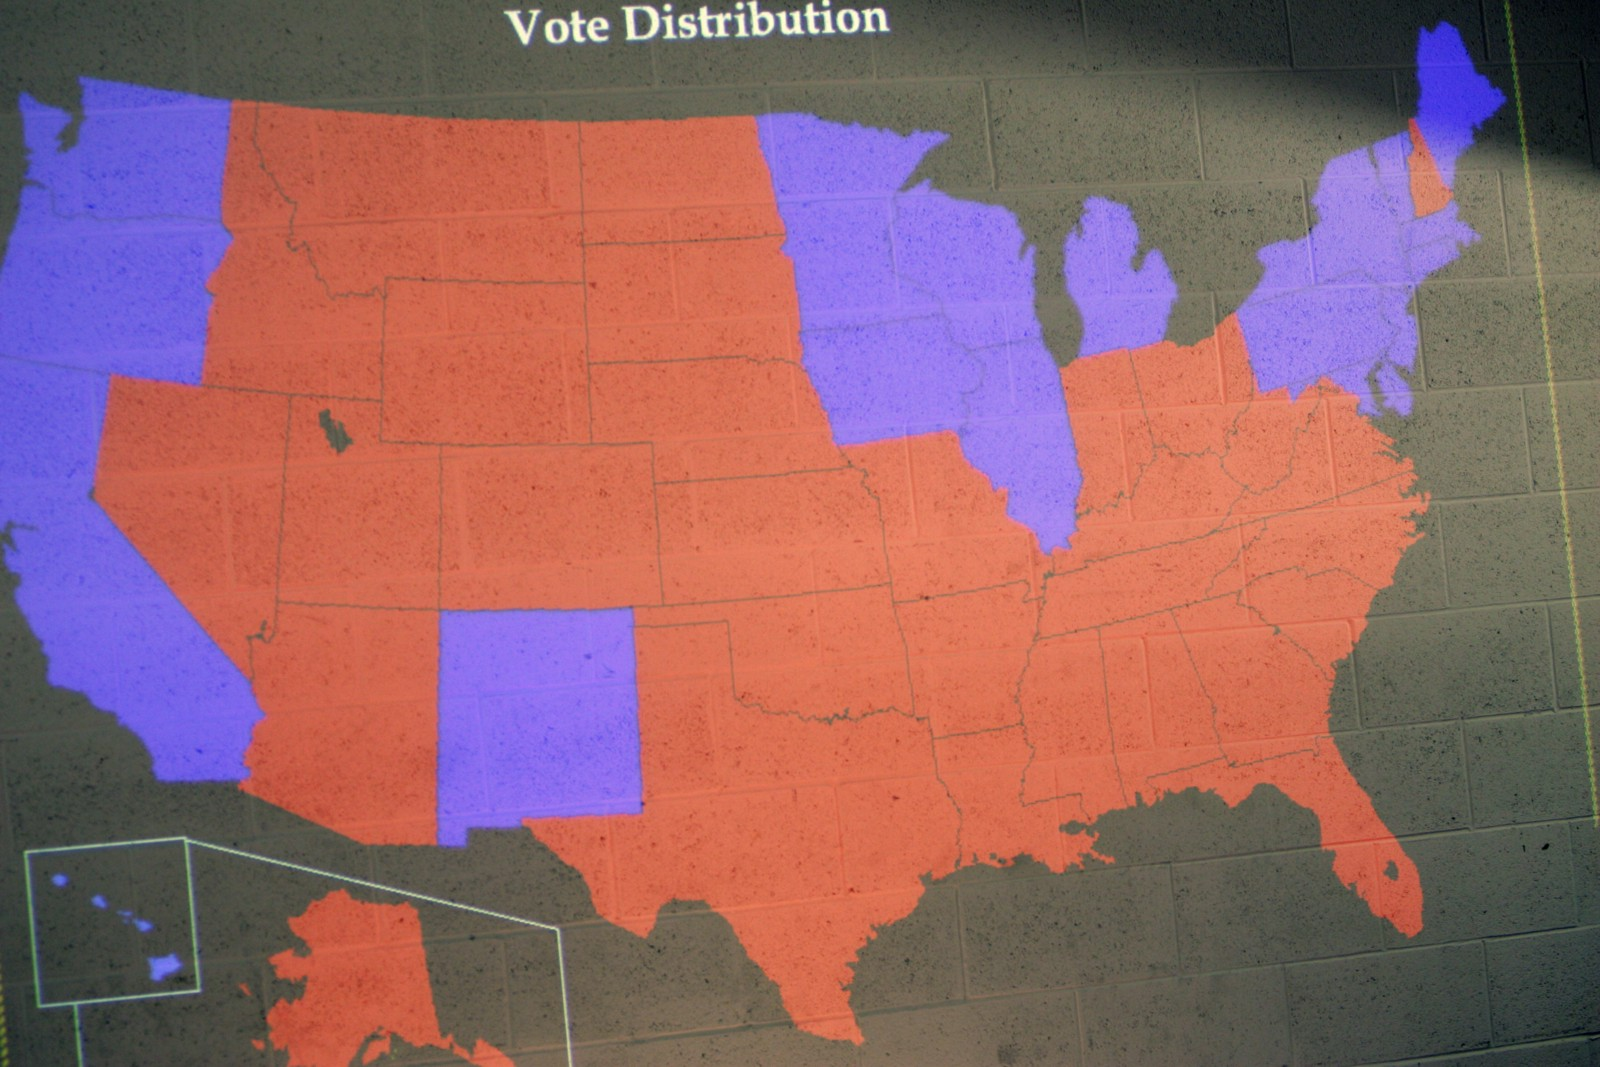 Political Voting Maps Are Useless Fast Company Medium